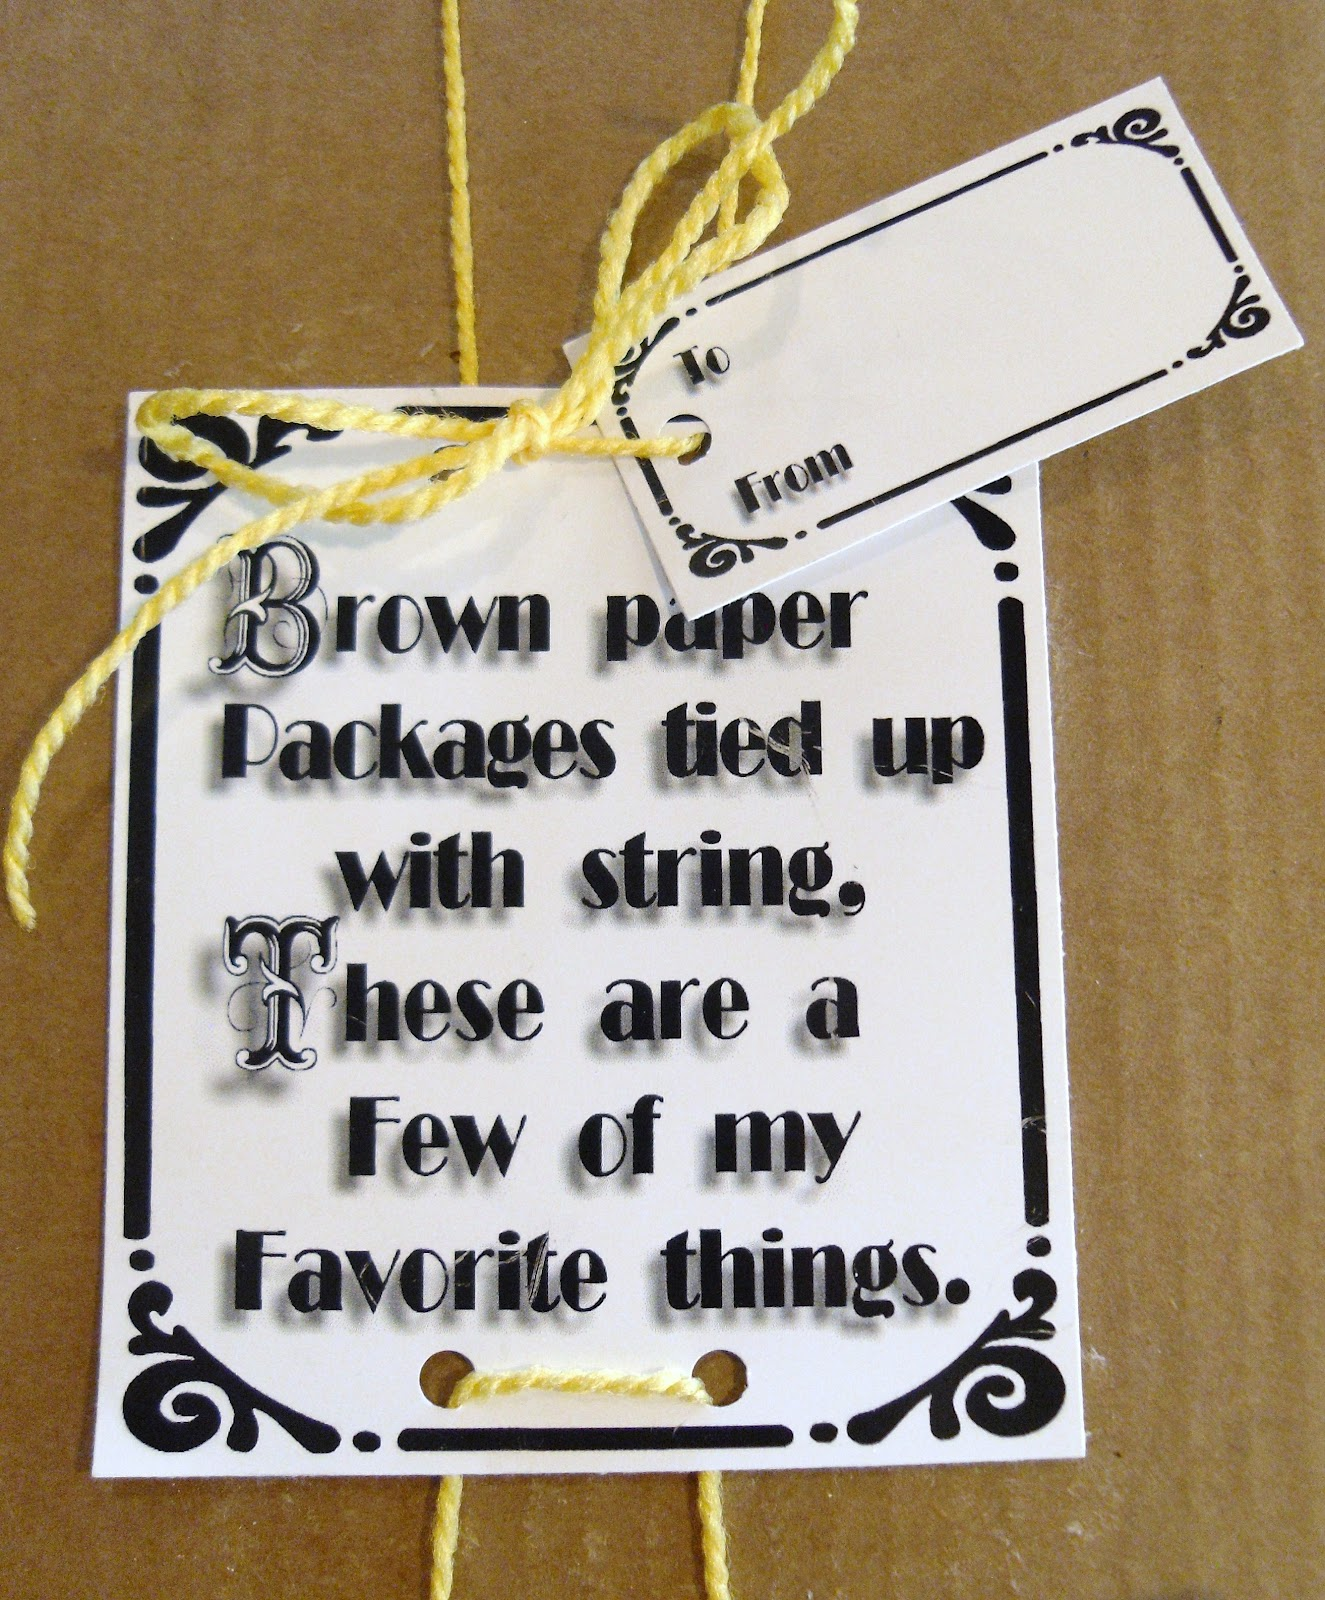 http://hollyshome-hollyshome.blogspot.com/2012/04/brown-paper-packages-tied-up-with.html